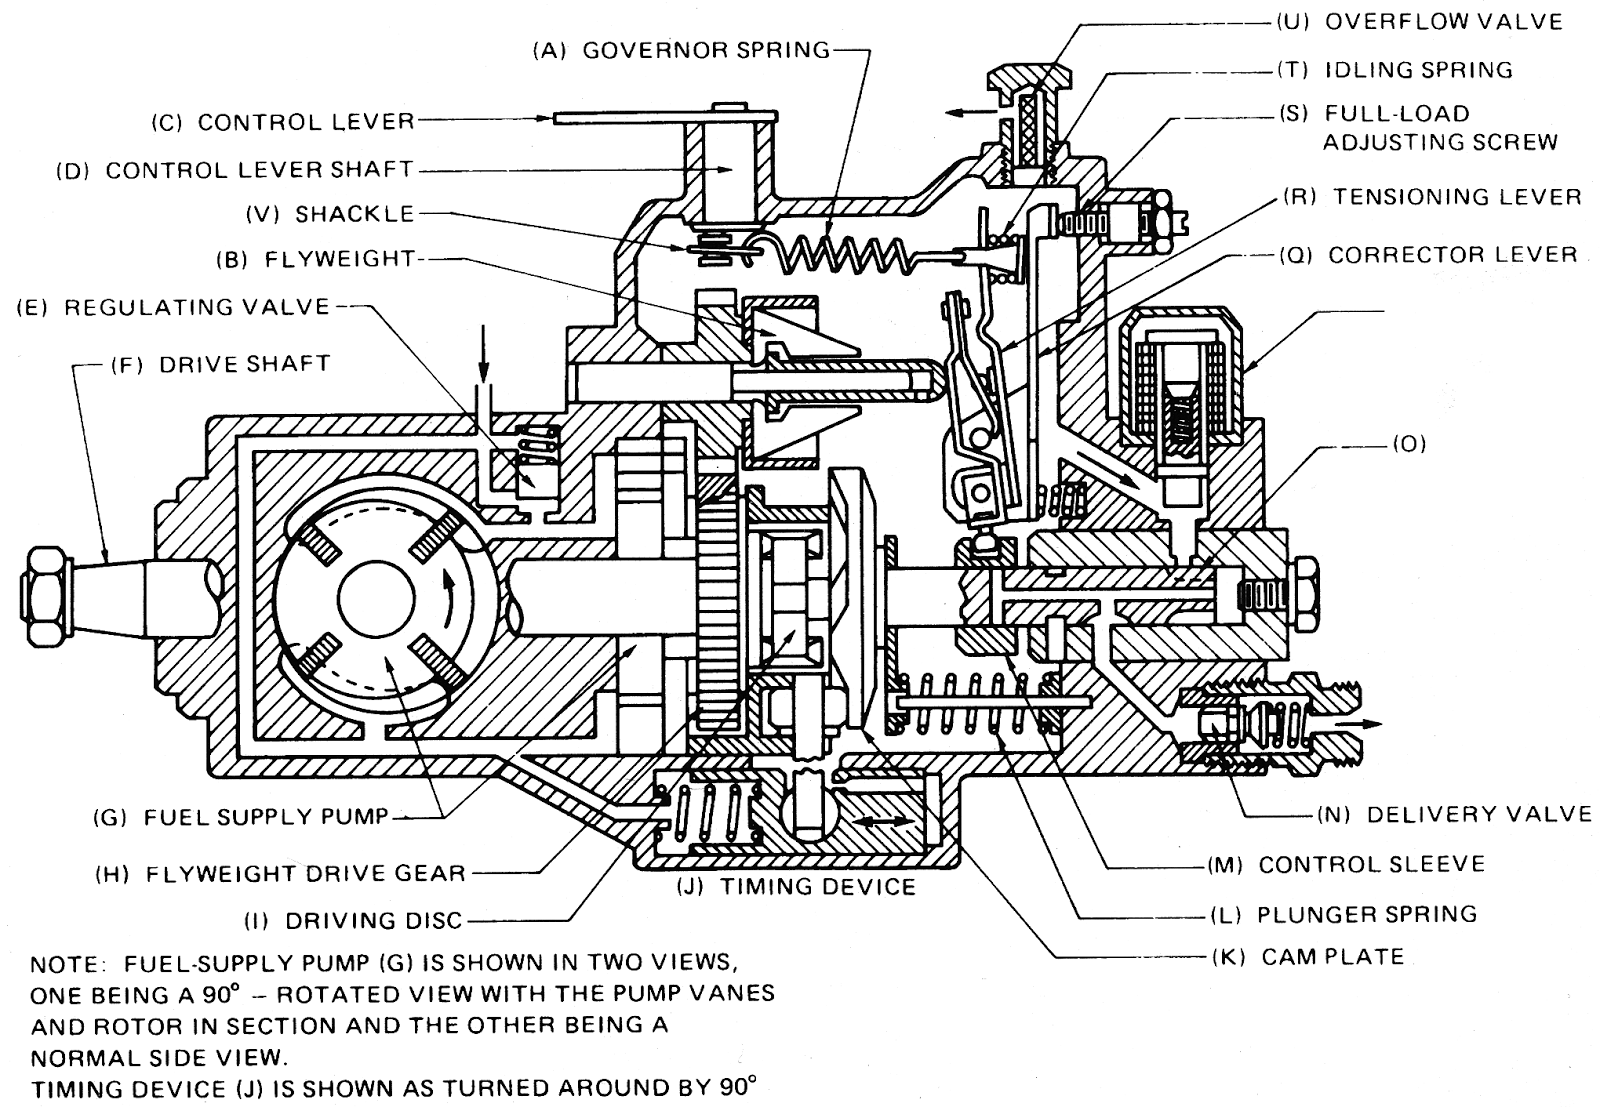 small resolution of delphi injection pump parts within diagram wiring and lucas fuel injector pump parts cav fuel injection pump diagram